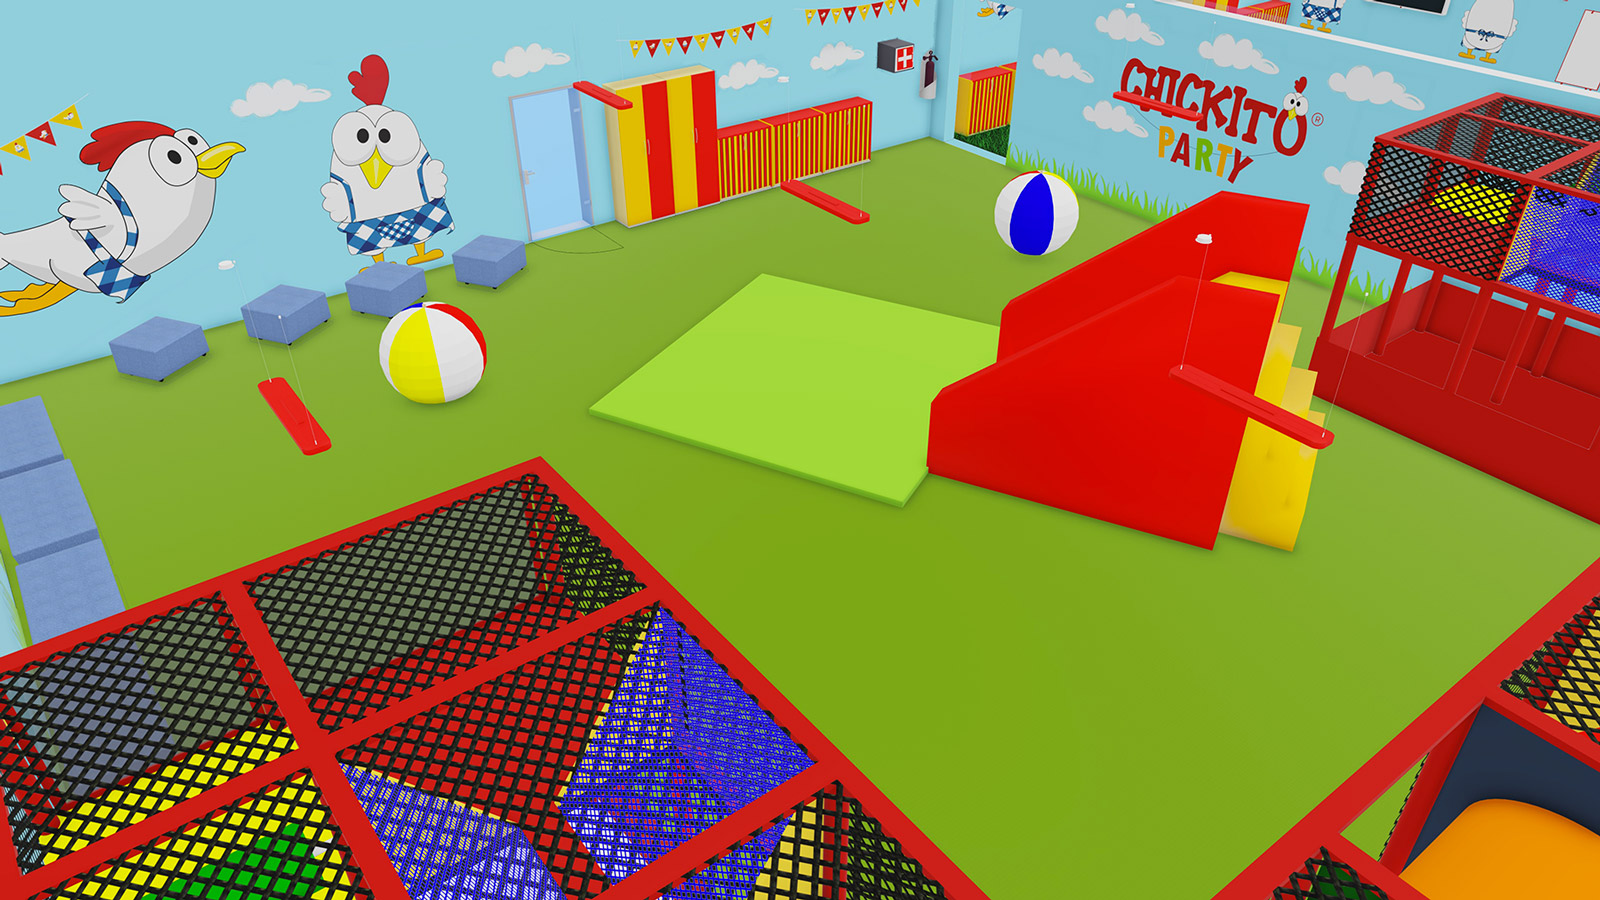 playground-chickito-party-laterale